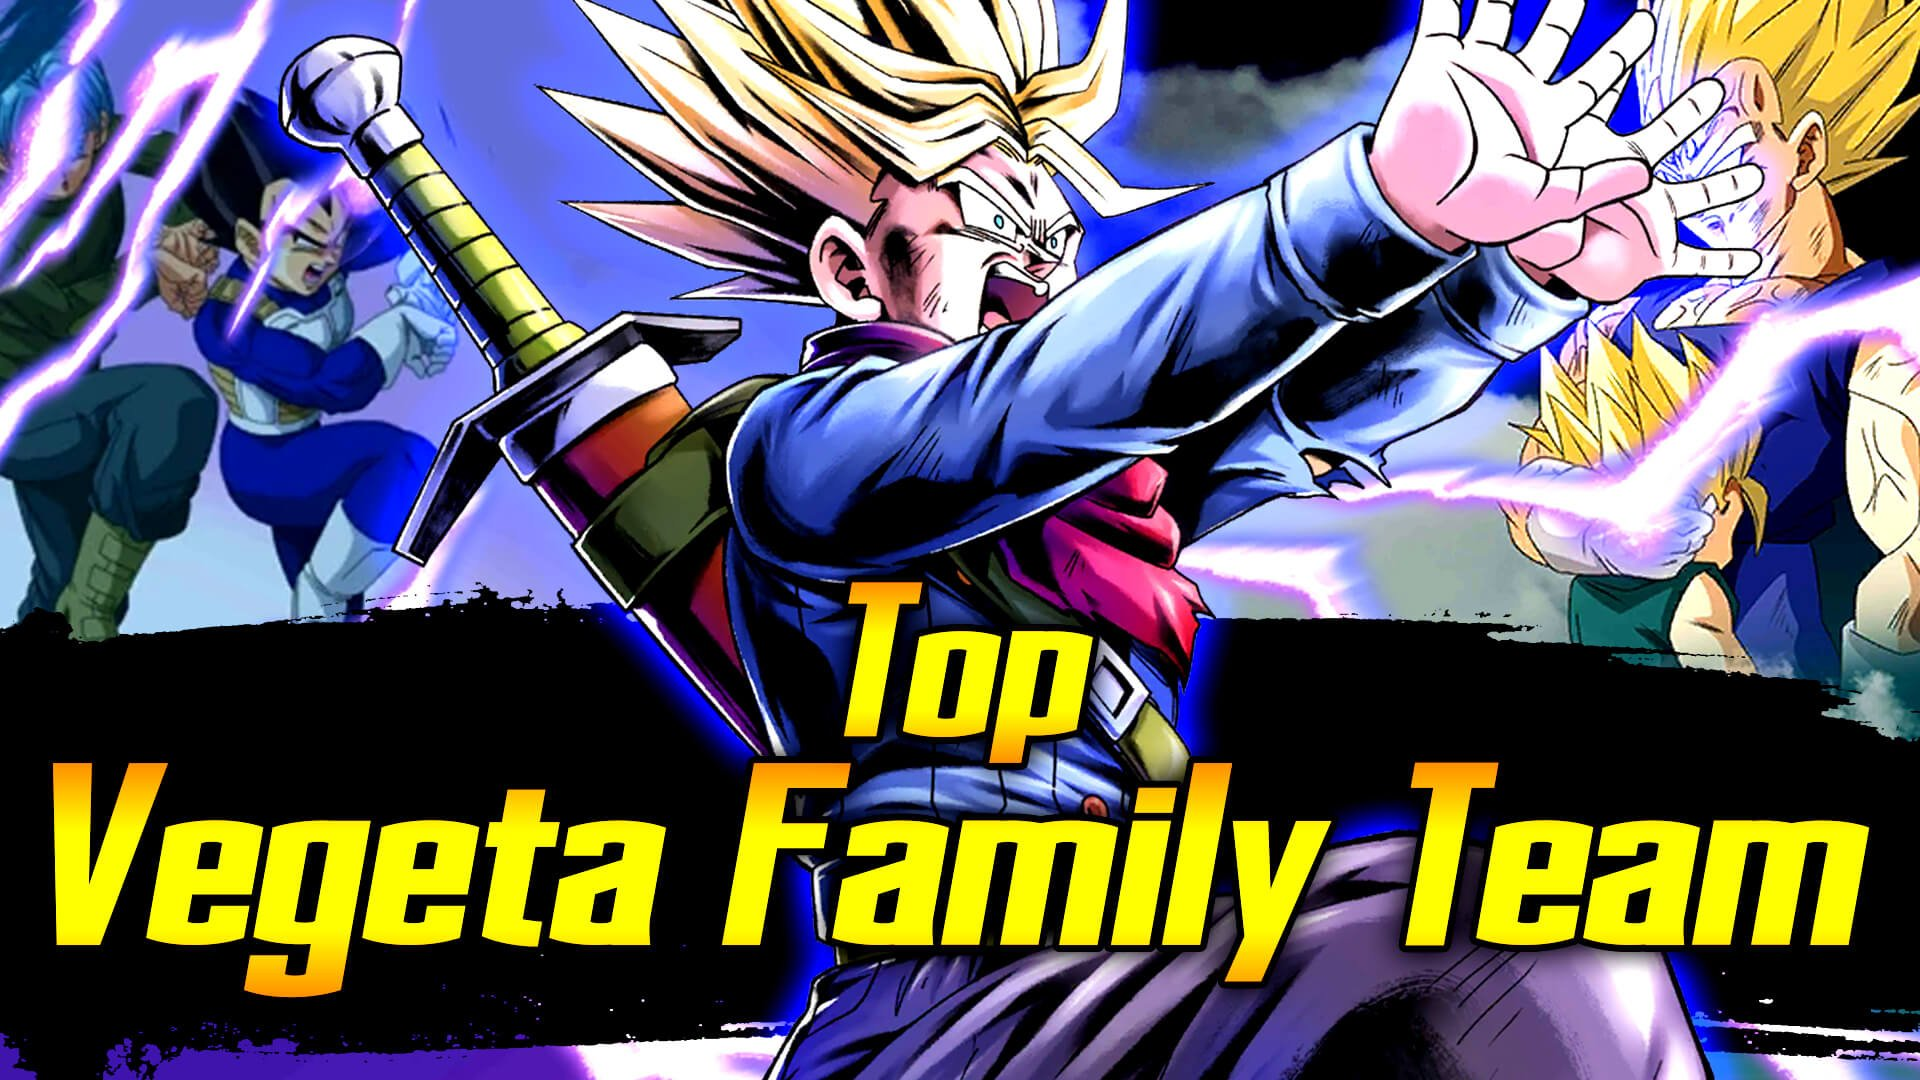 Top Vegeta Family Team